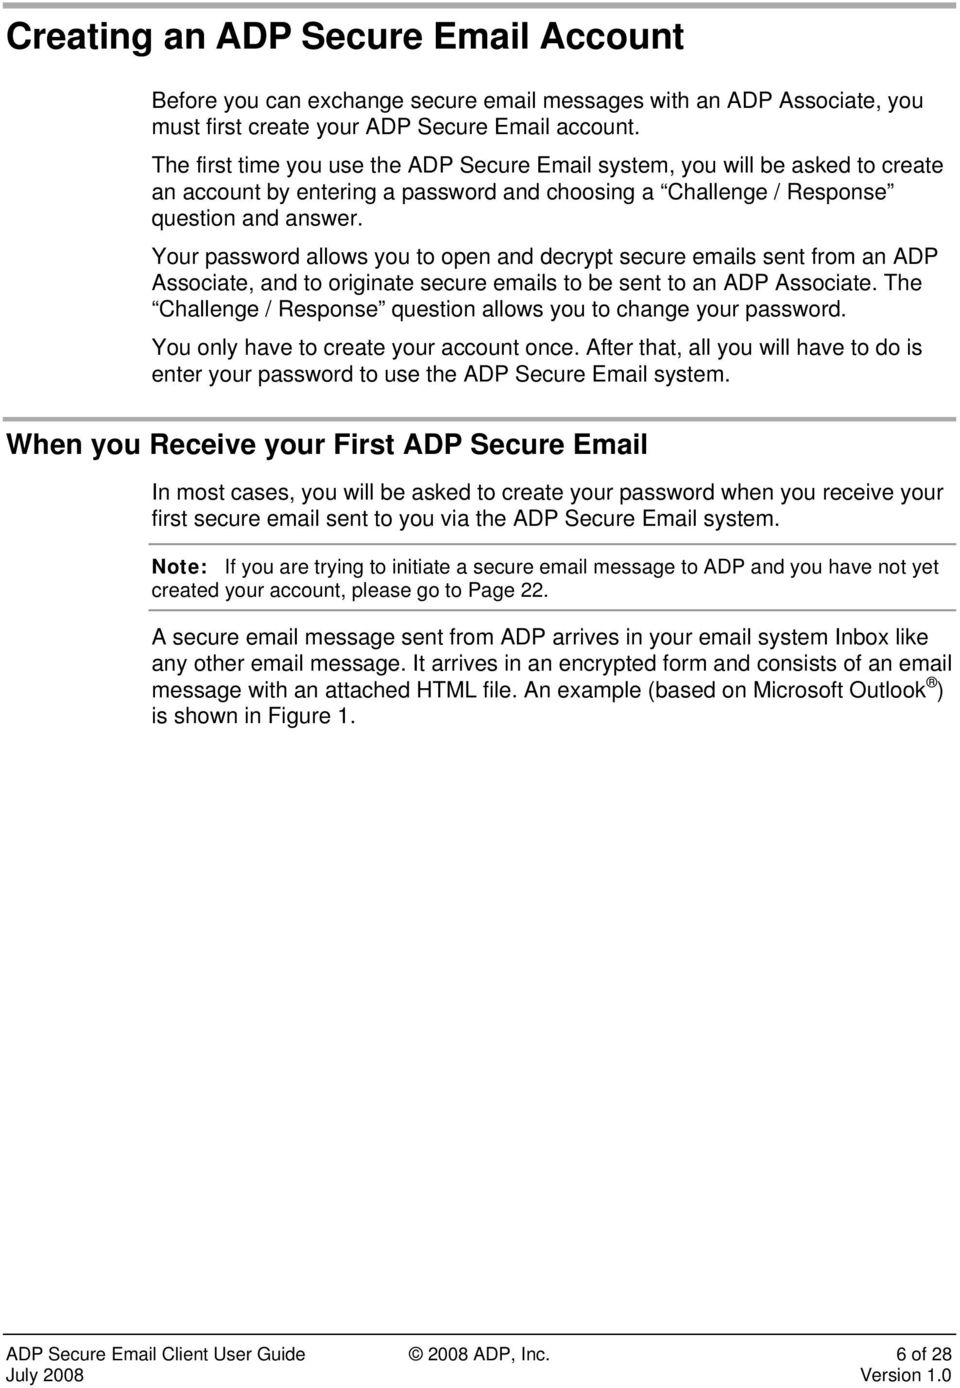 Your password allows you to open and decrypt secure emails sent from an ADP Associate, and to originate secure emails to be sent to an ADP Associate.